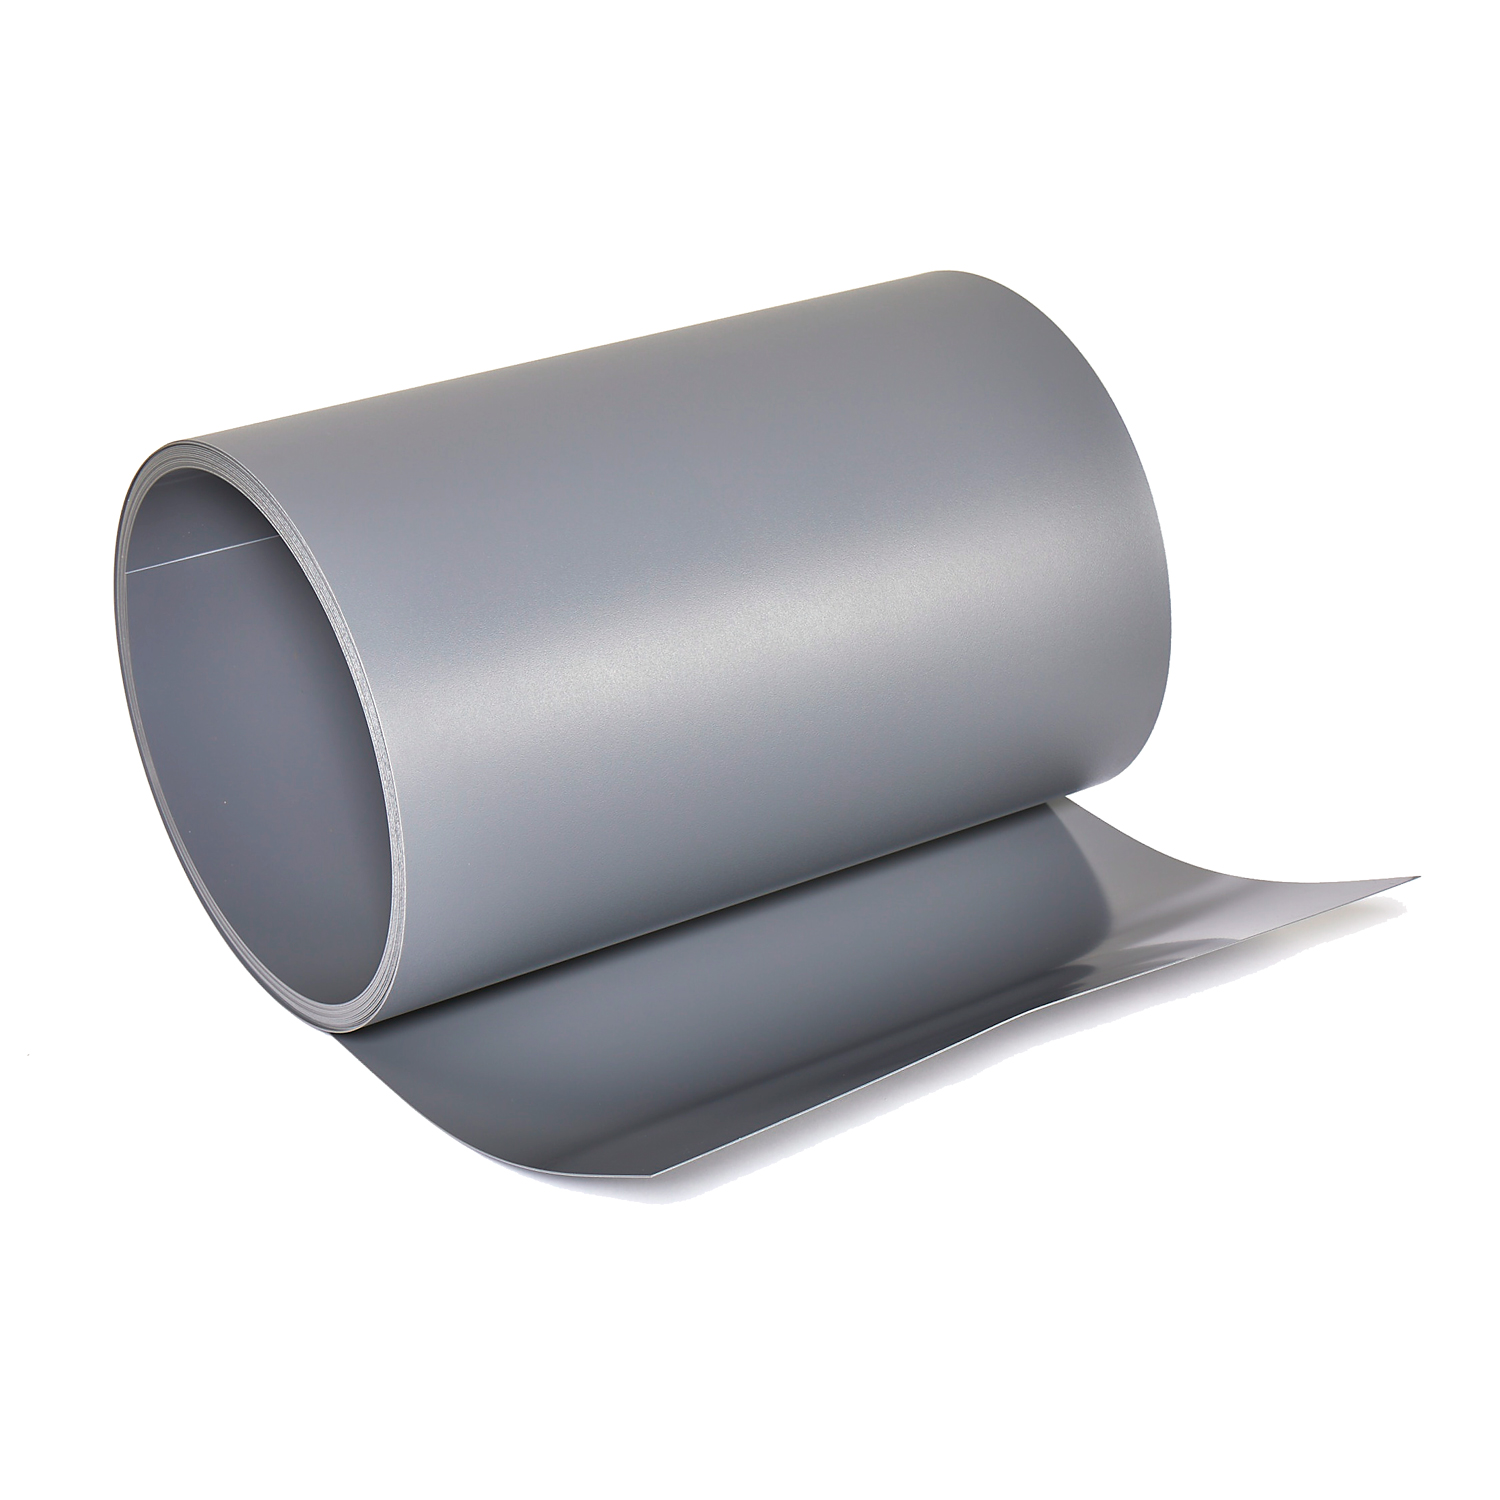 Rolled rigid vinyl sheet in grey